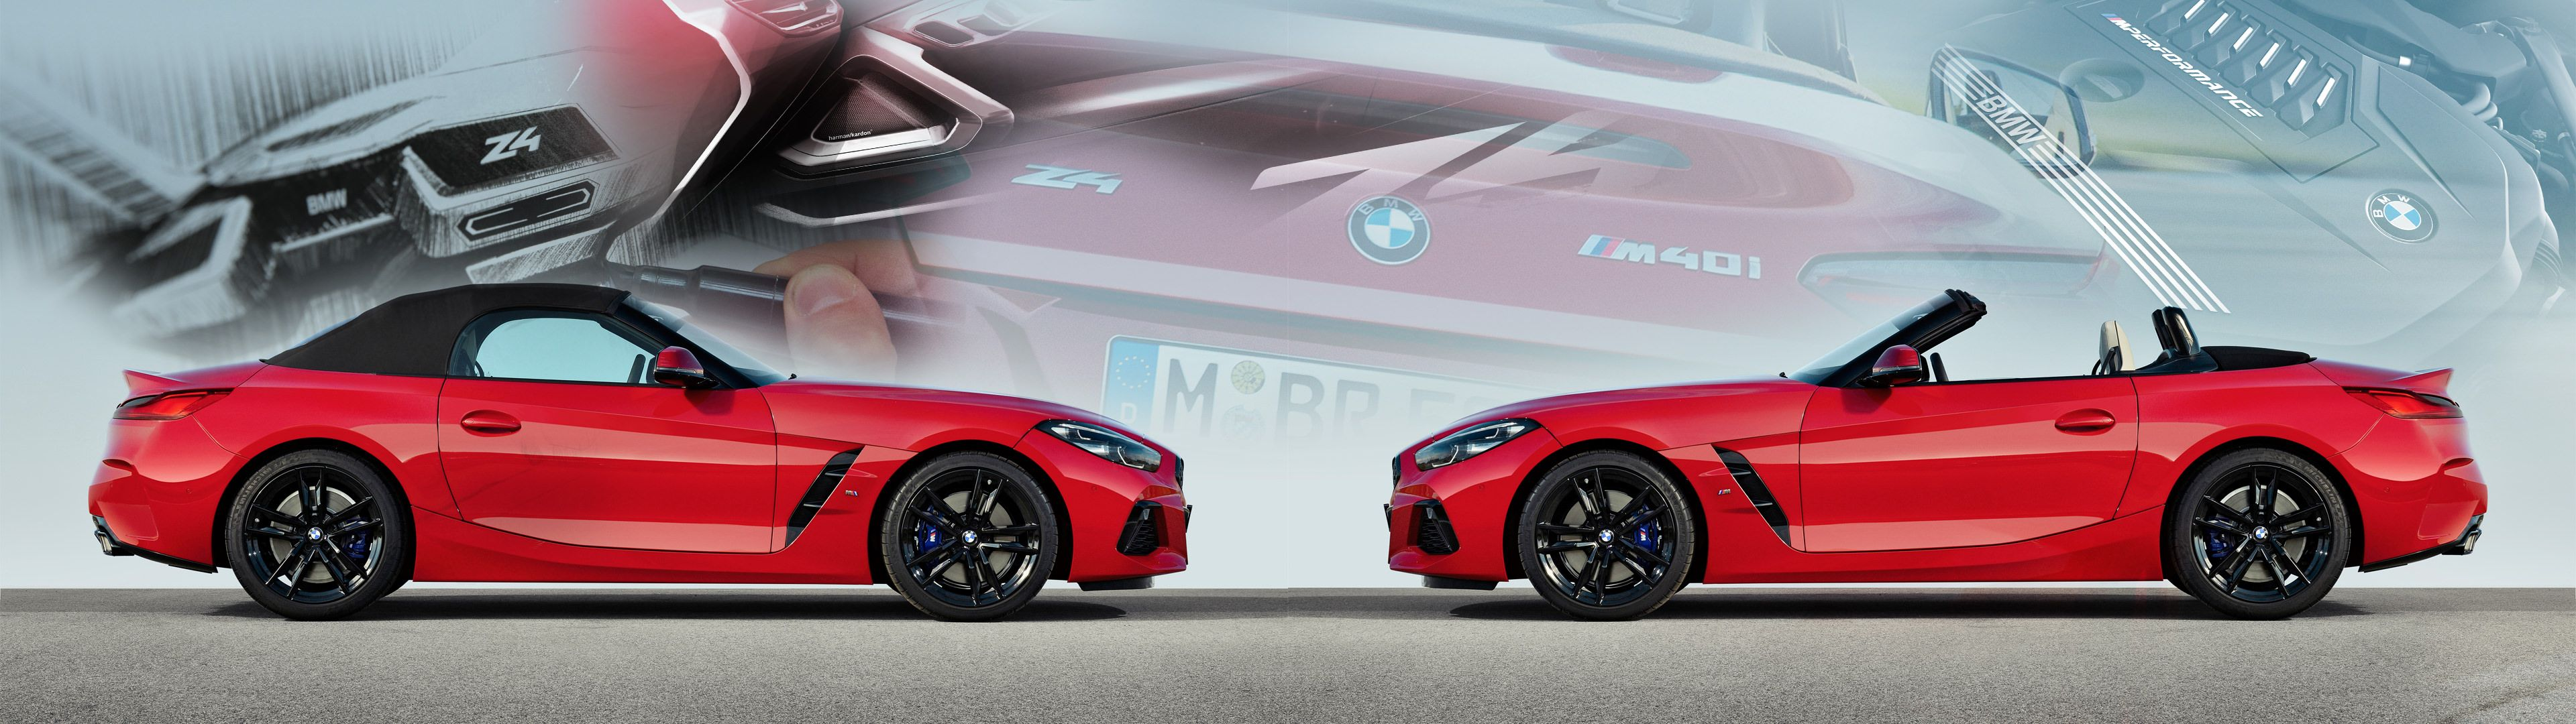 BMW Dual Monitor Wallpapers - Top Free BMW Dual Monitor ...